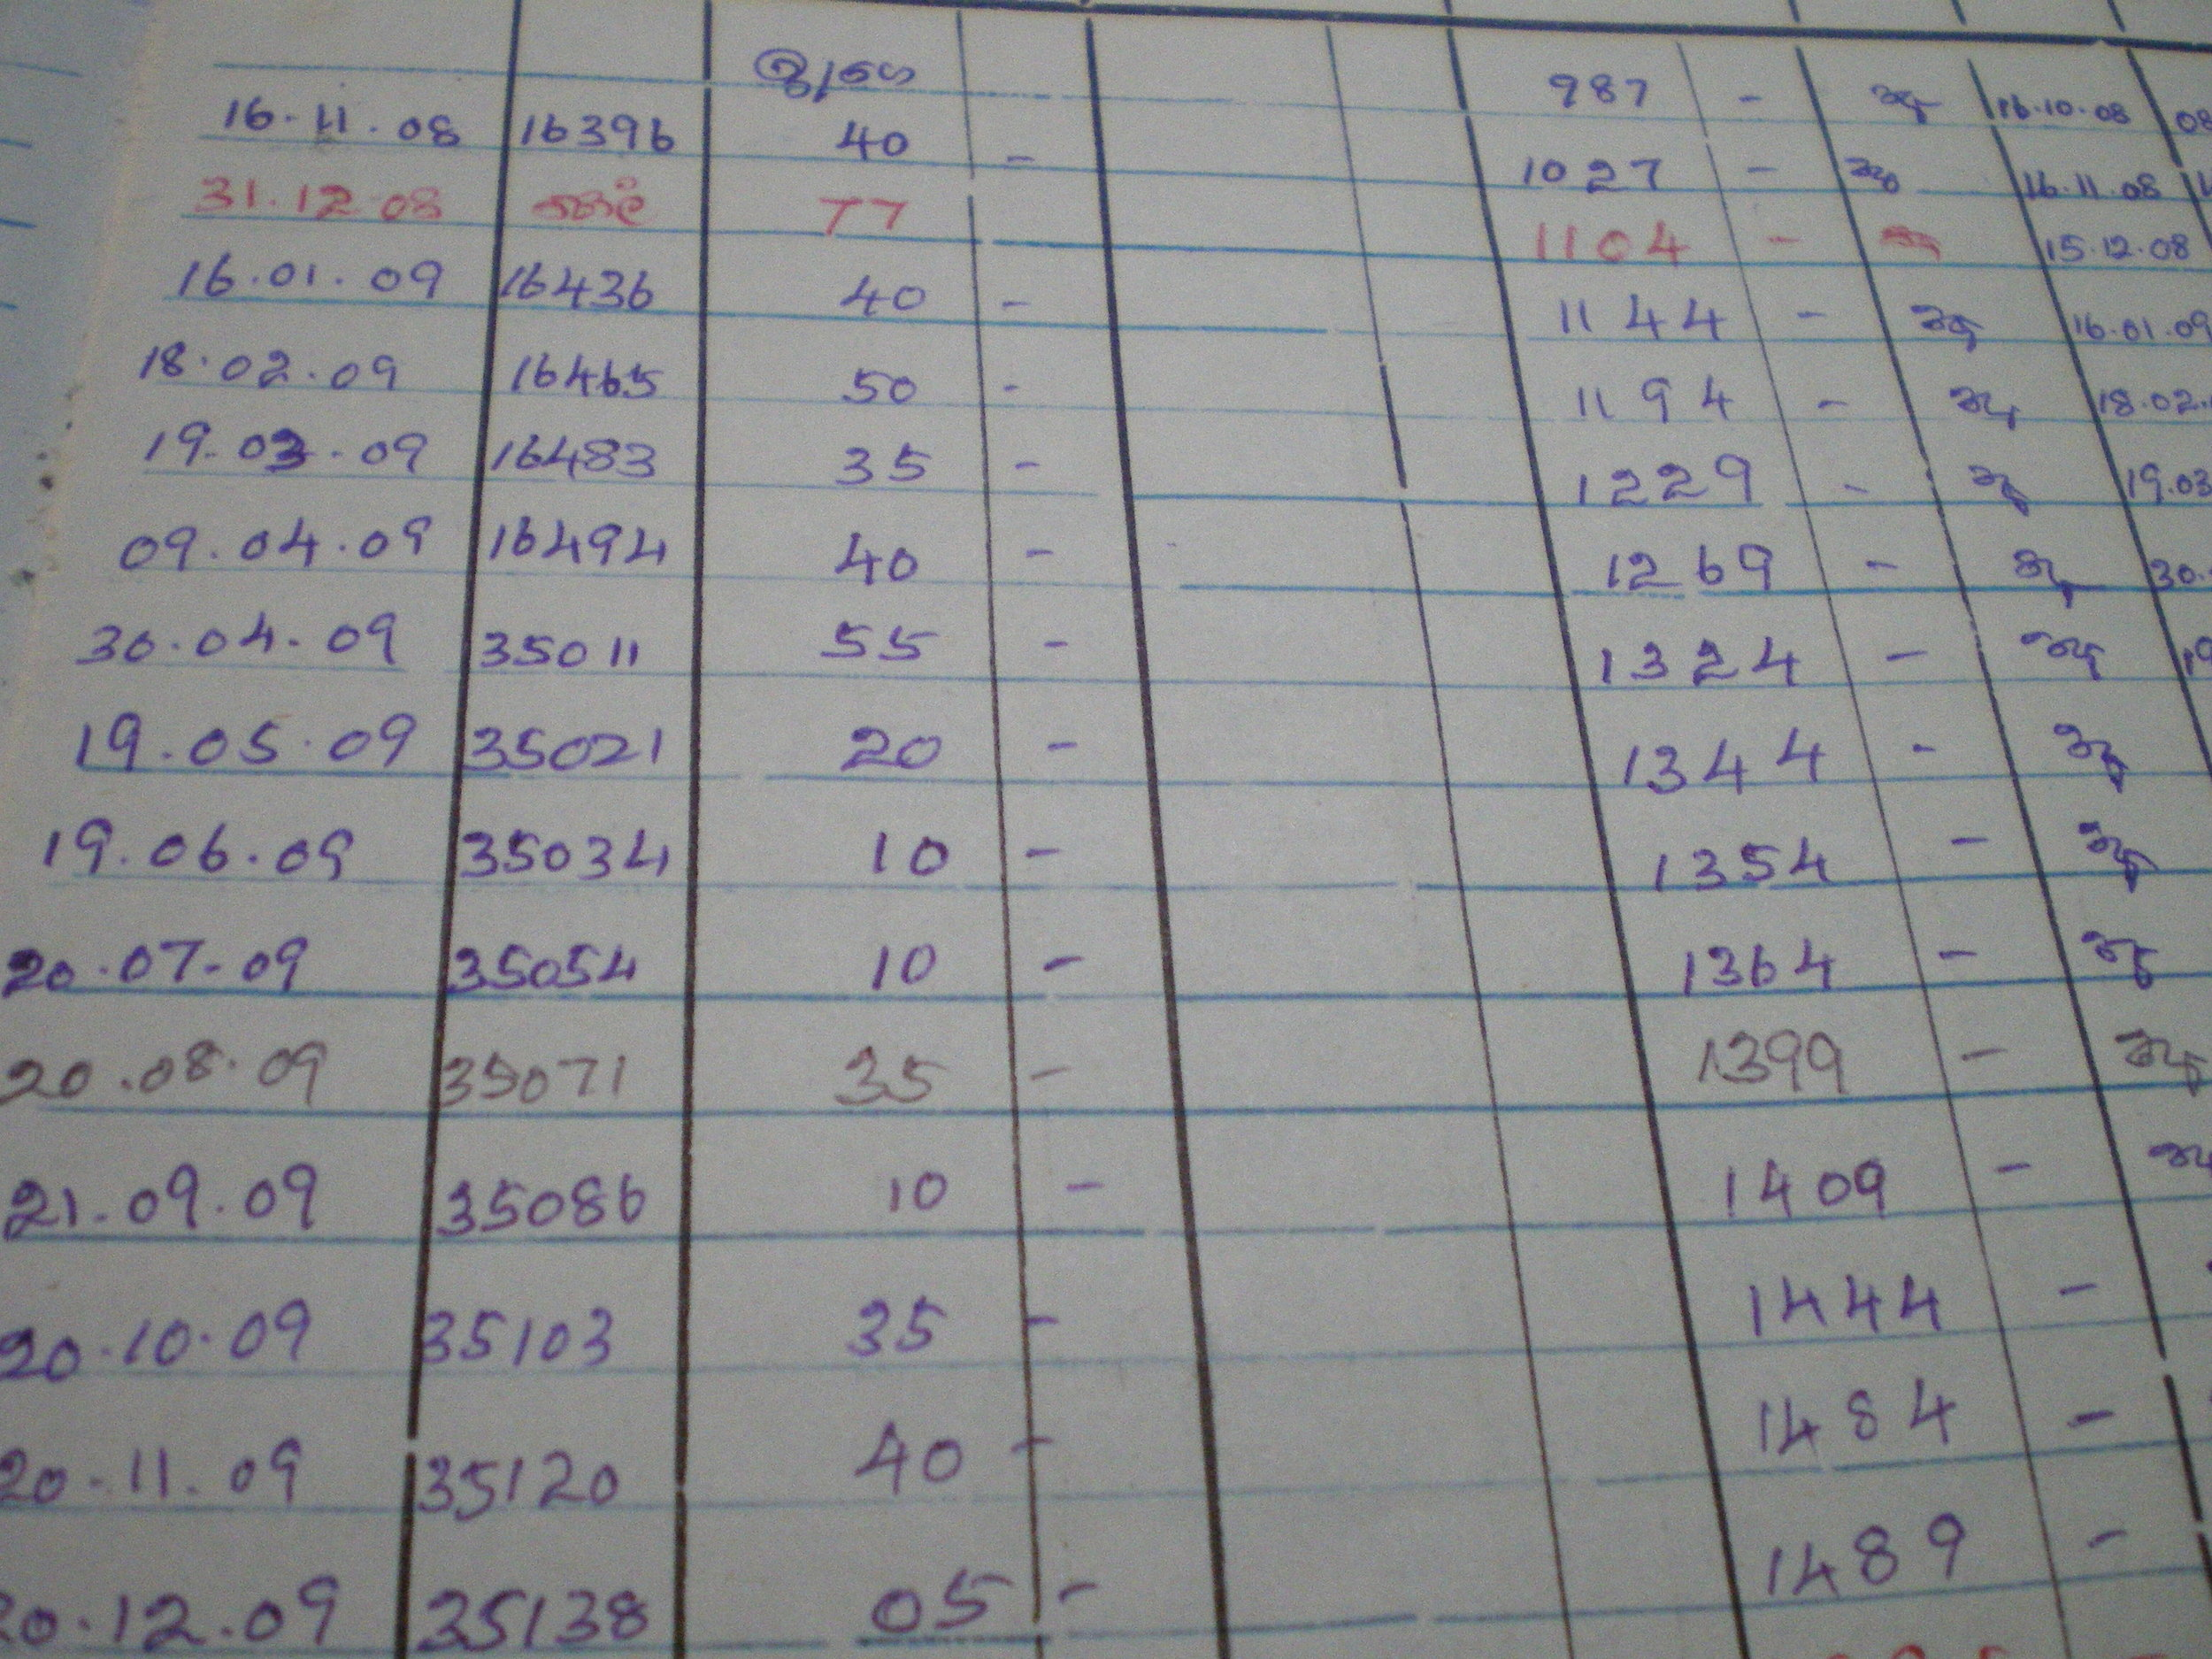 Close-up of hand-written entries in a bank account passbook.